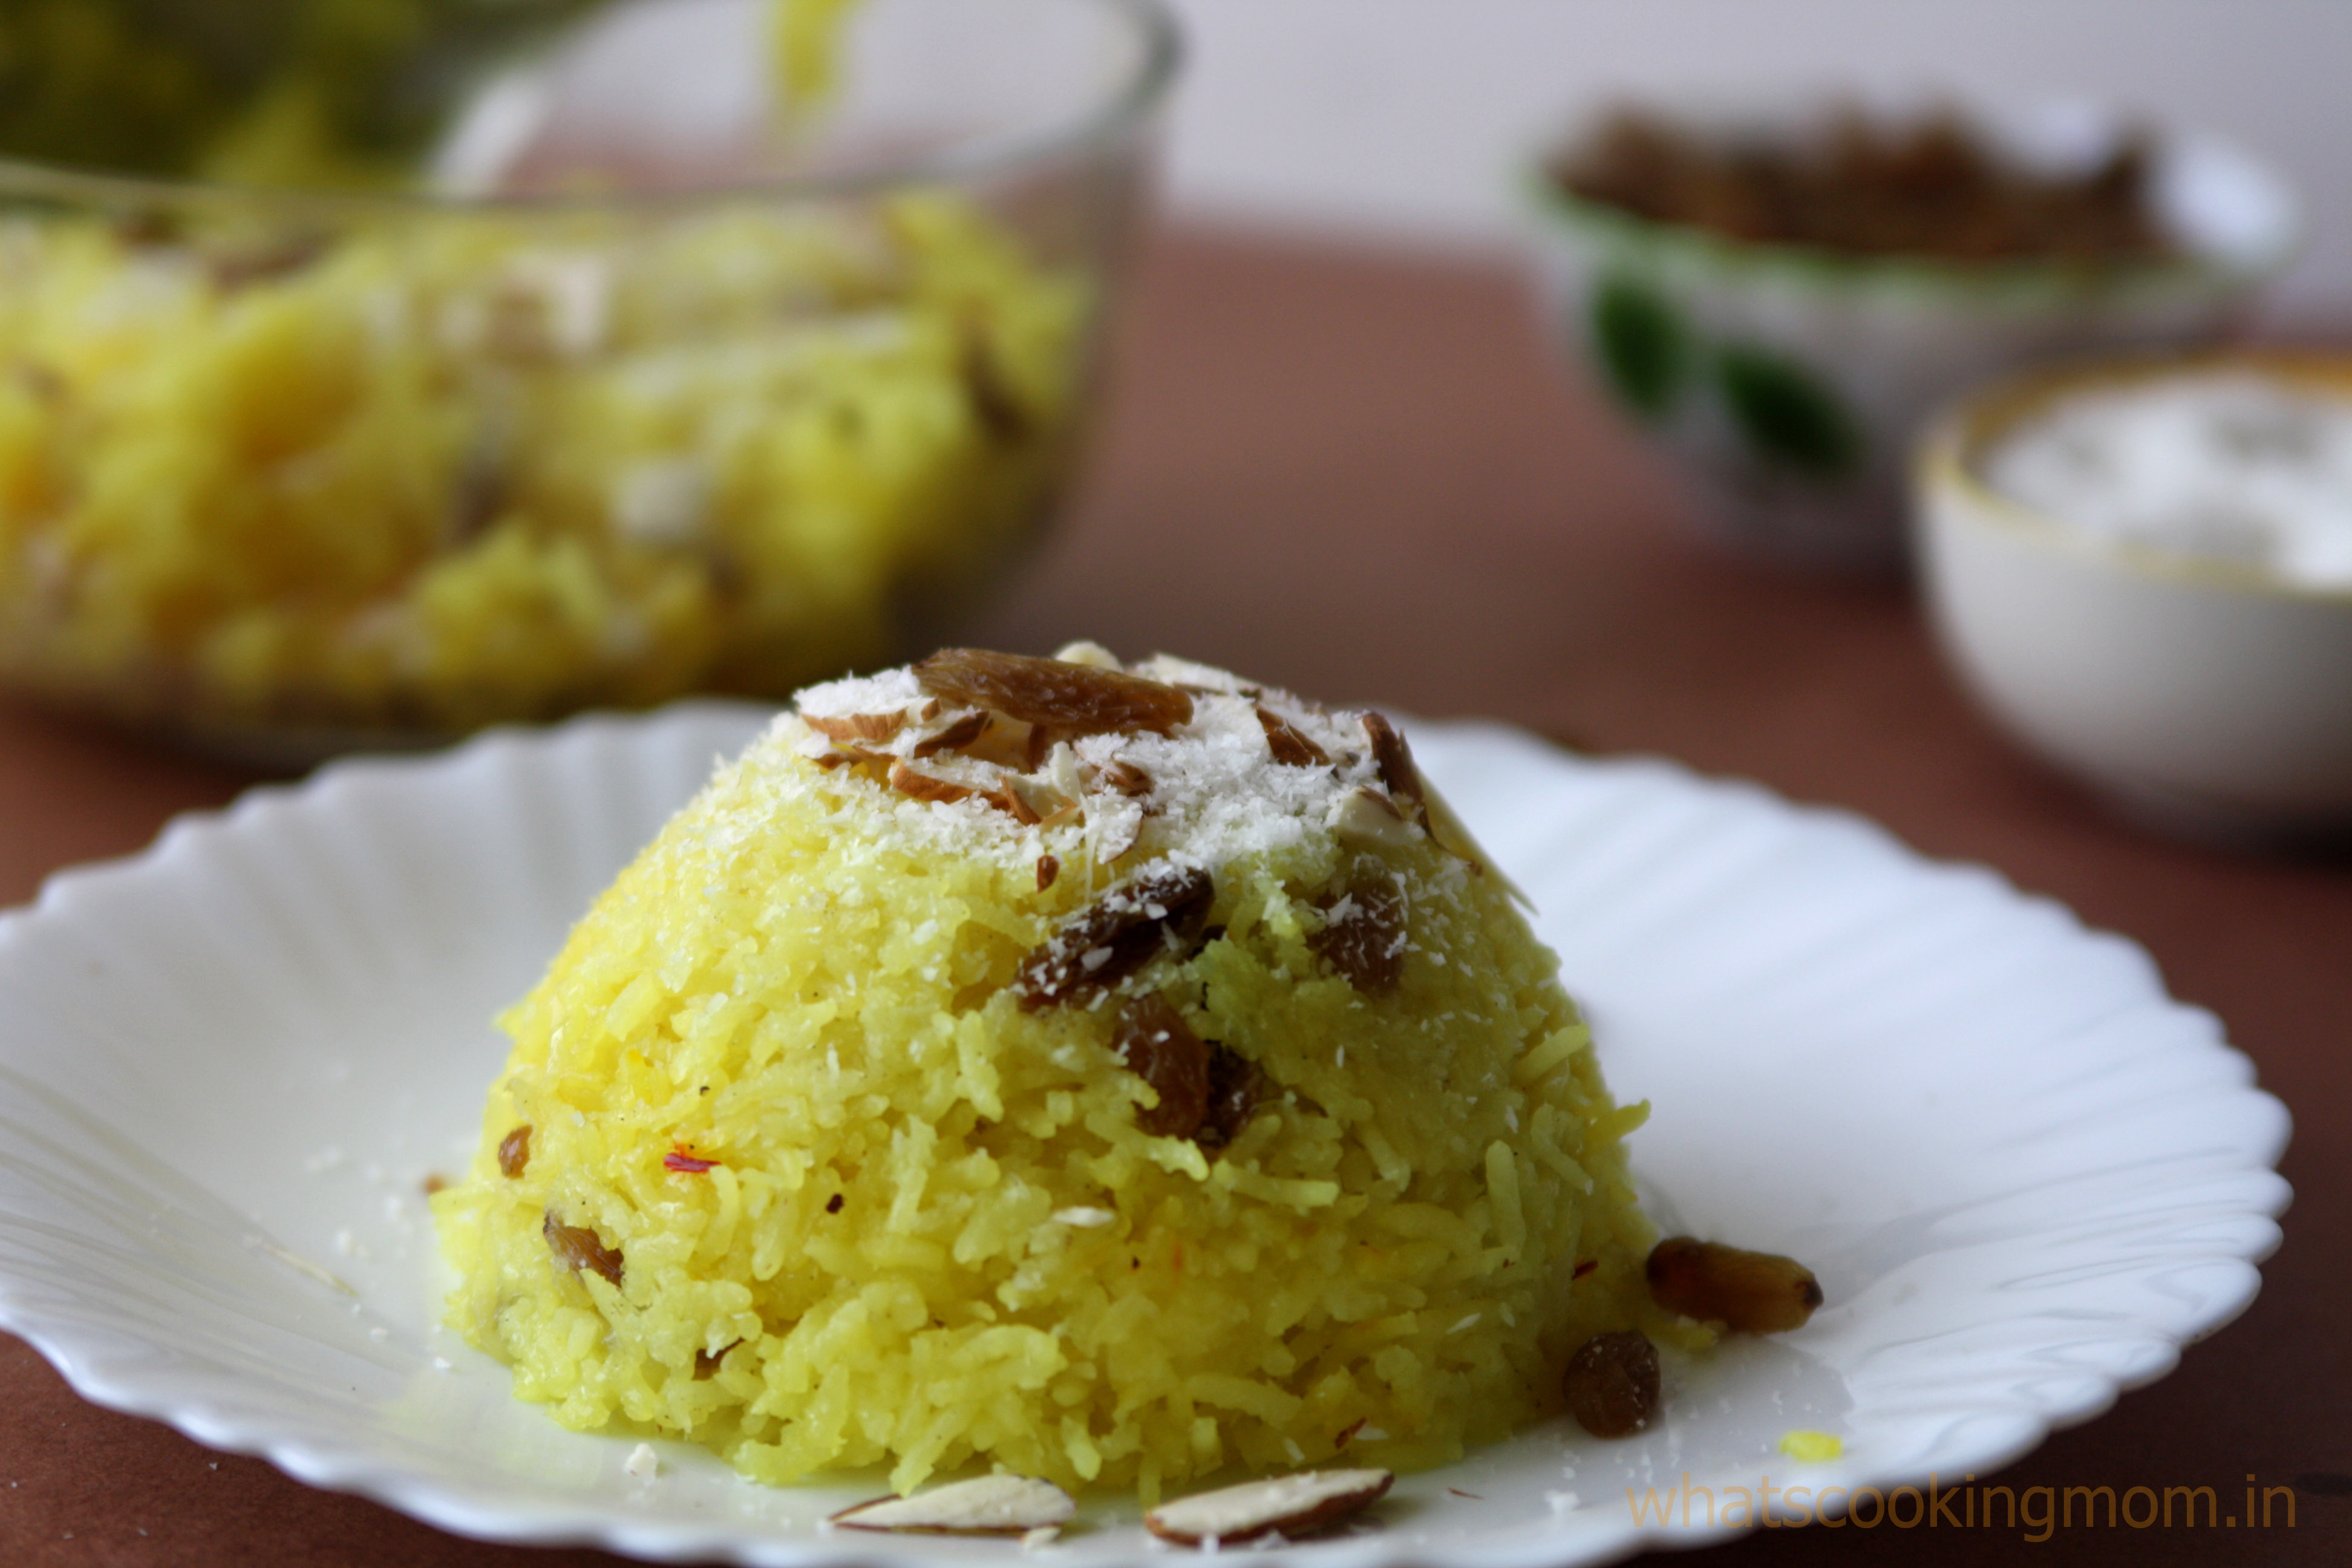 Meethe Chawal - Traditional Indian sweet Dish made with Basmati rice and flavored with Saffron